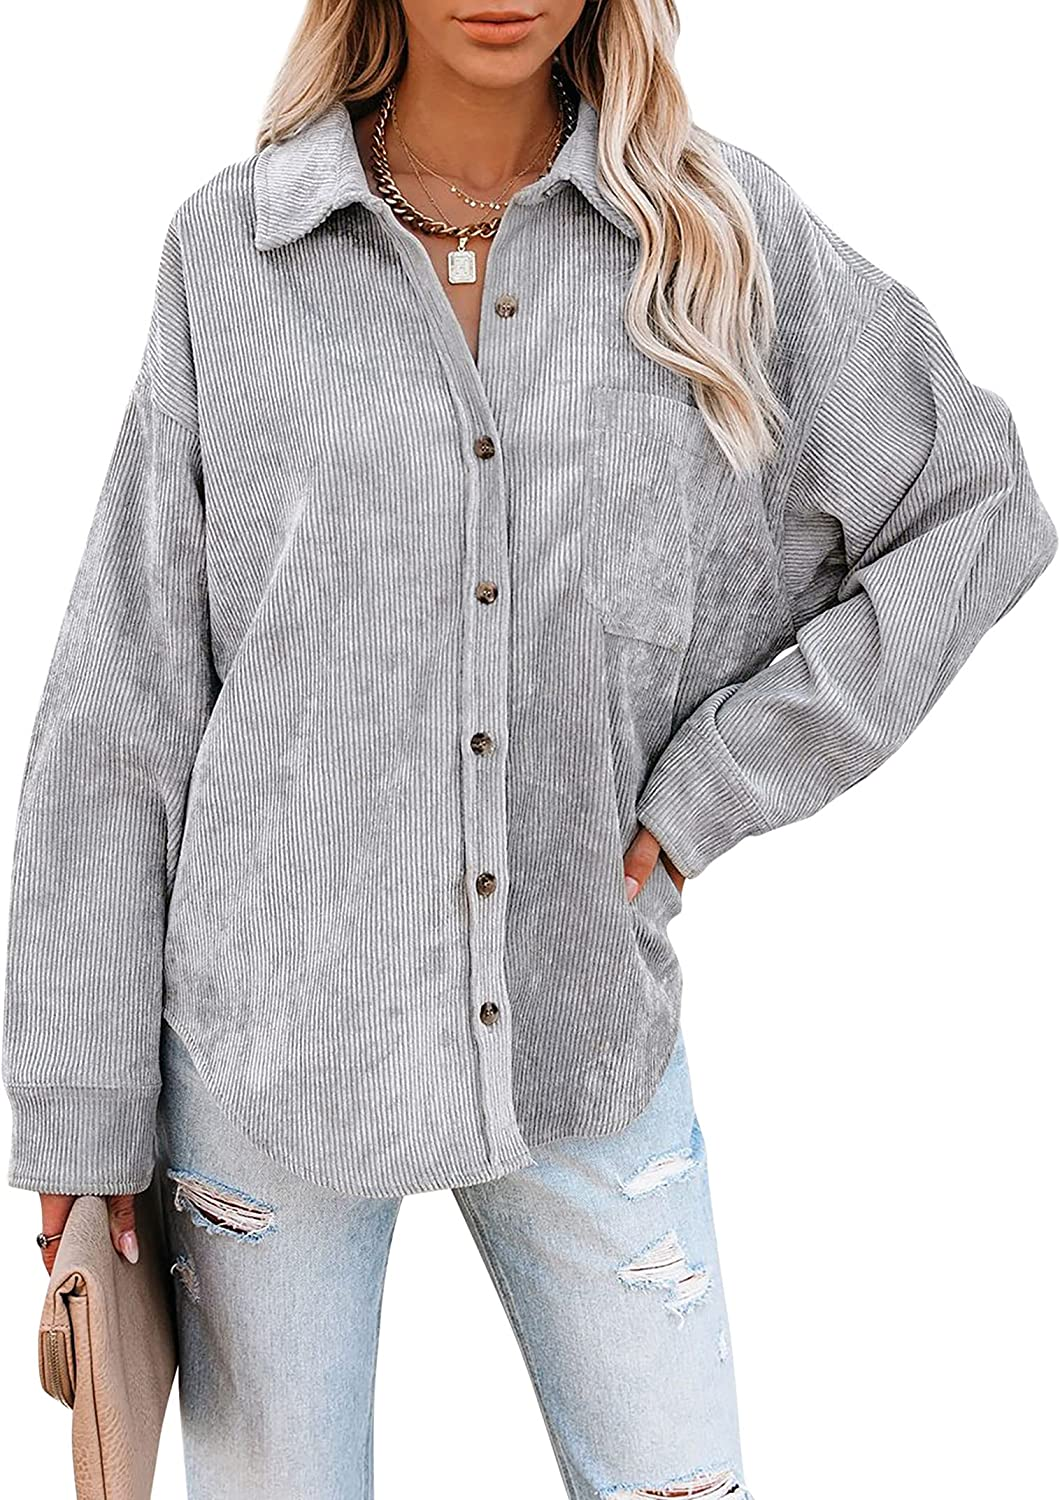 KOJOOIN Womens Corduroy Shirts Color Block Casual Long Sleeve Button Down Blouses Tops